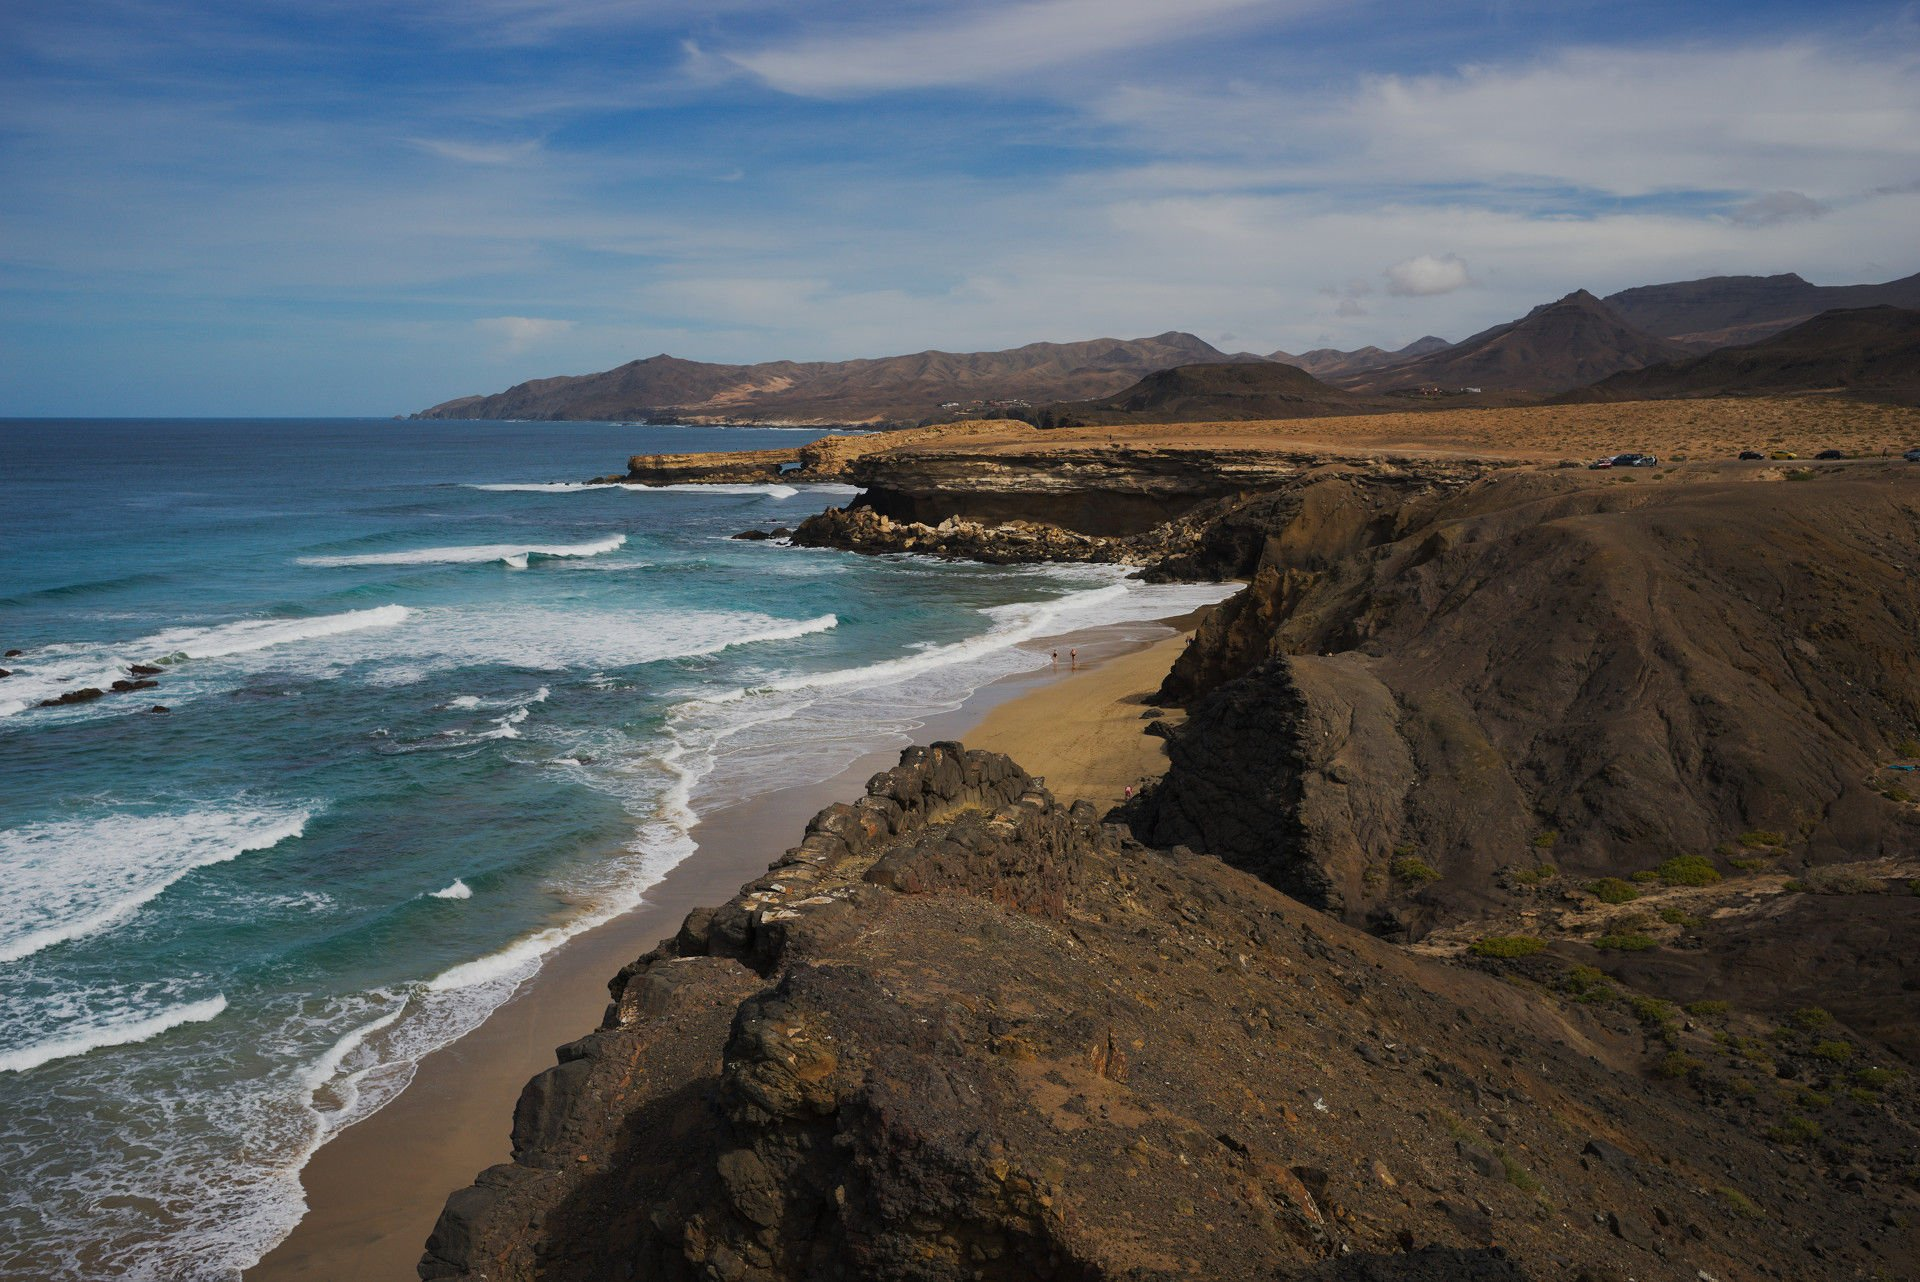 Playa de la Pared, Fuerteventura